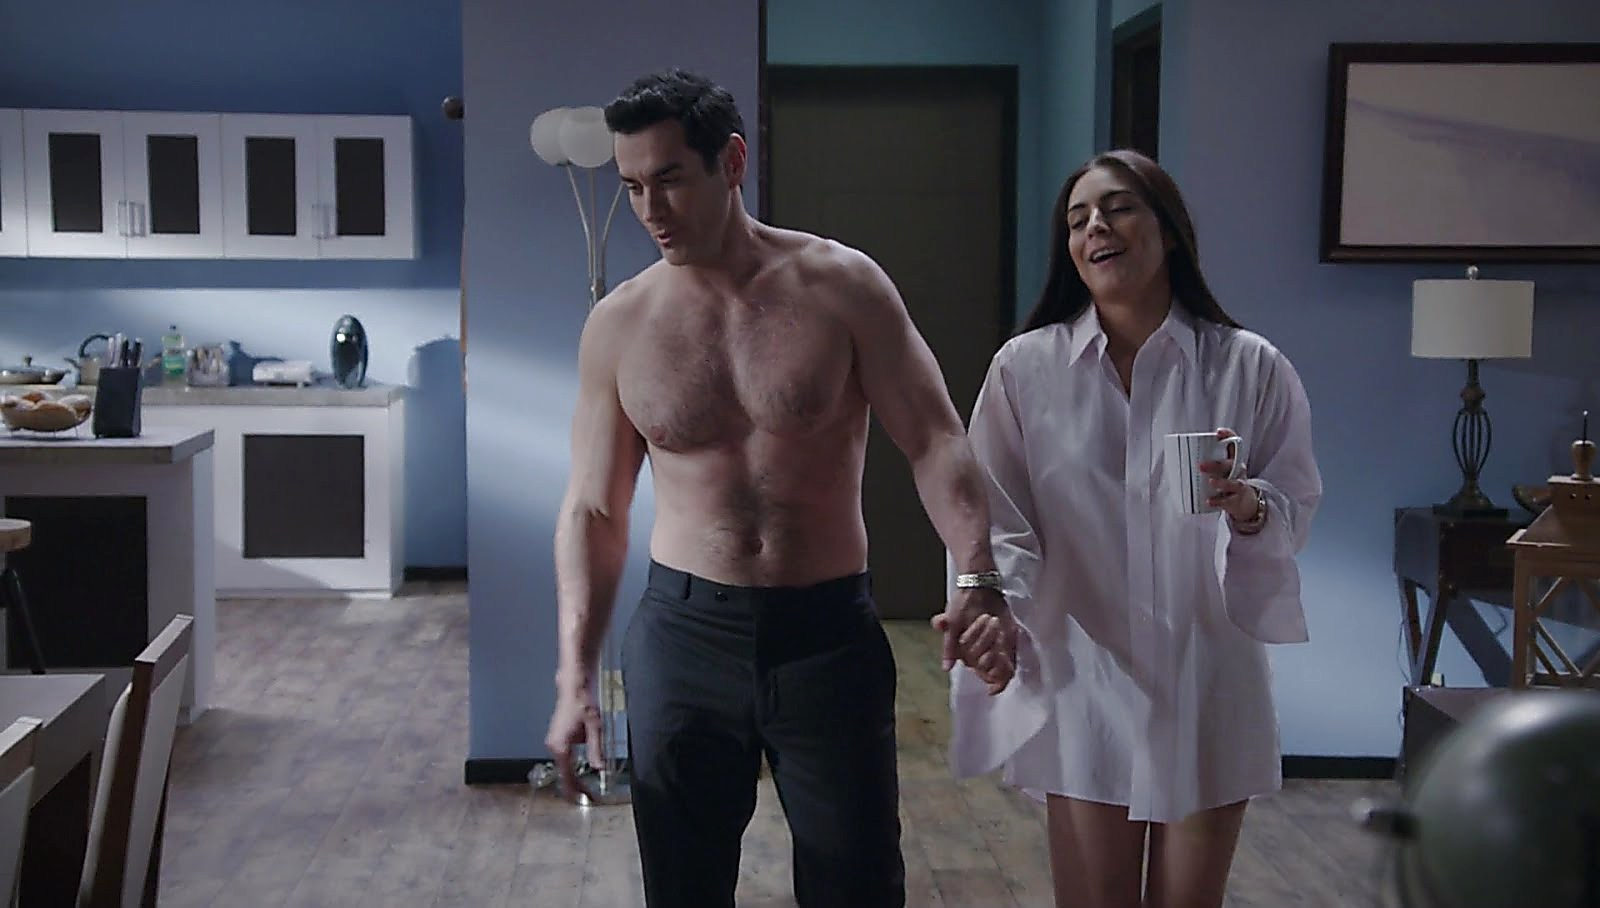 David Zepeda sexy shirtless scene June 9, 2018, 11am